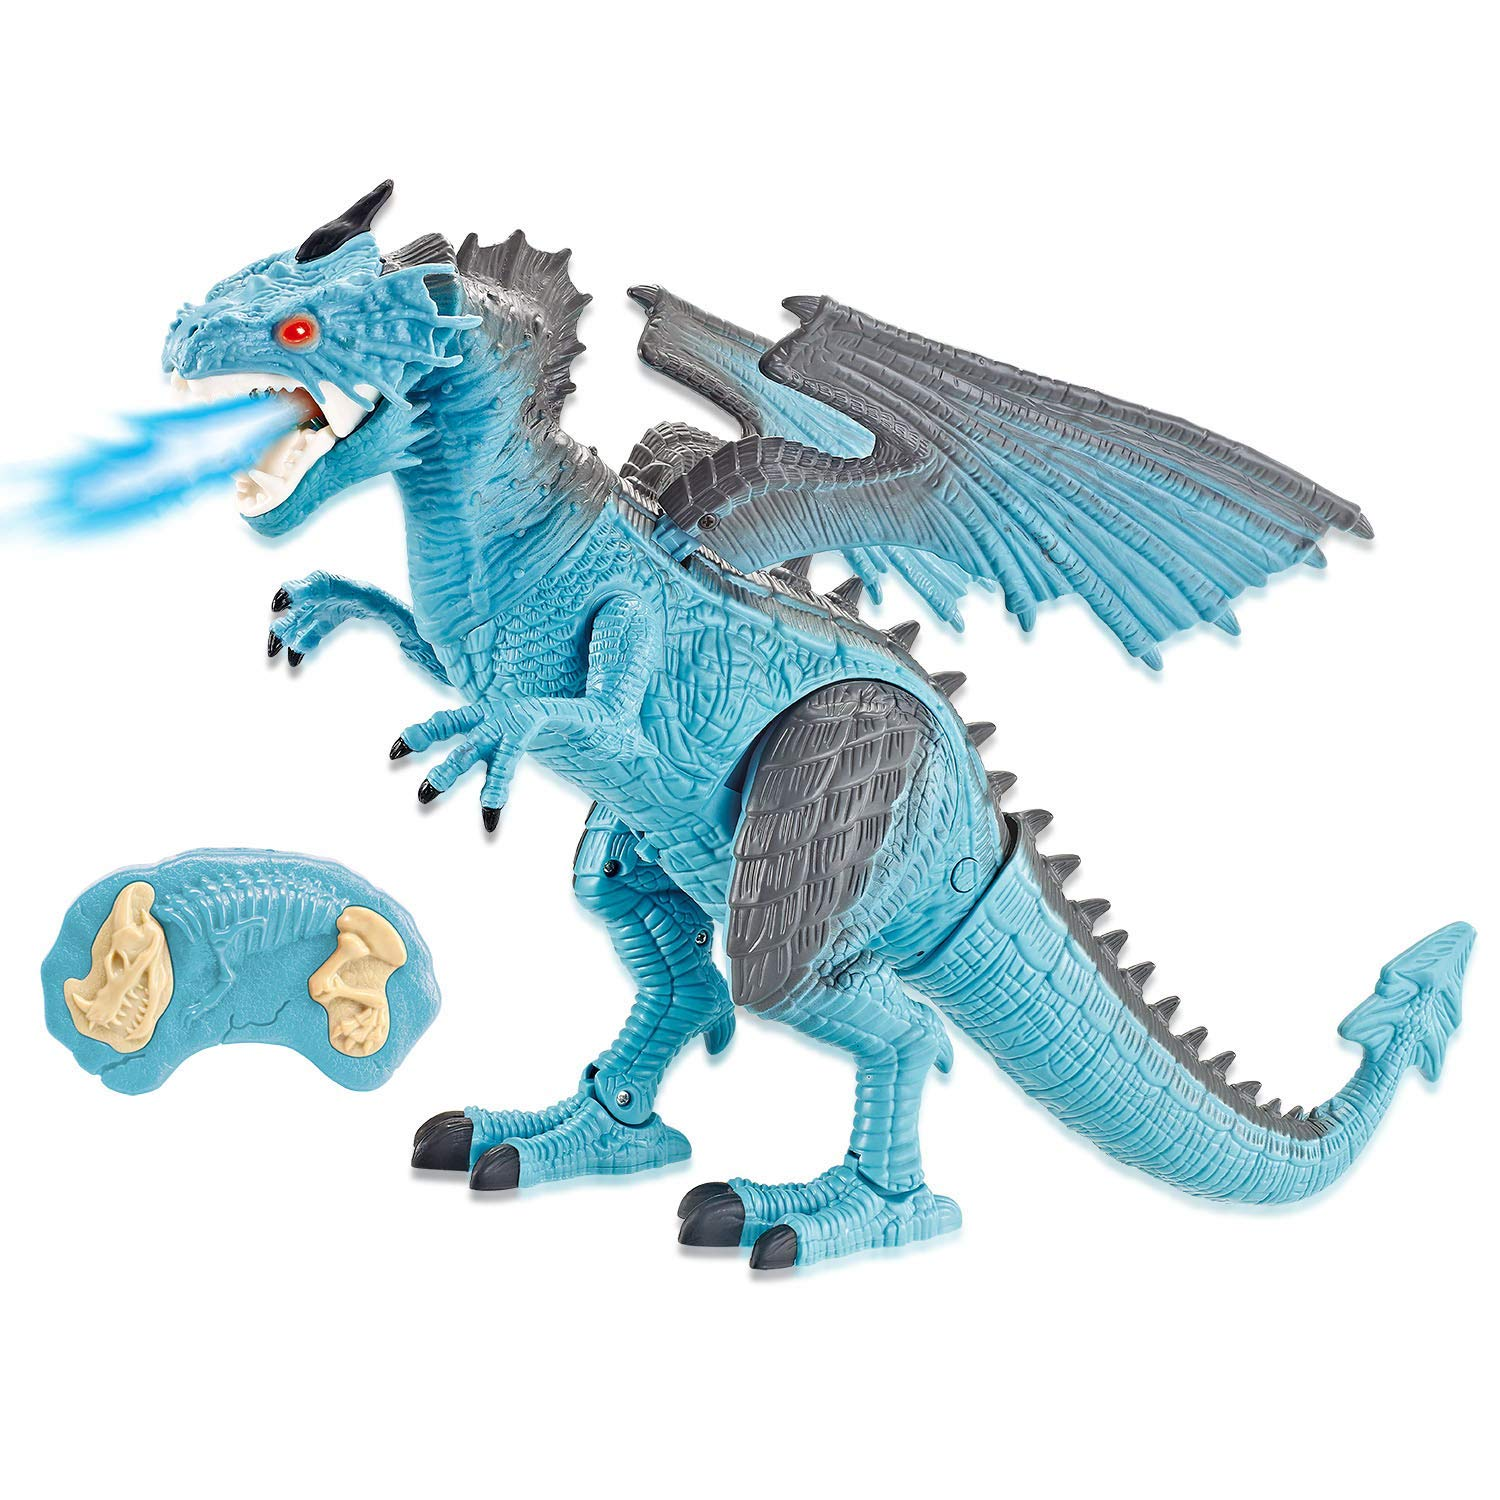 10 Of The Best Dragon Toys For Kids Reviews In 2021 7